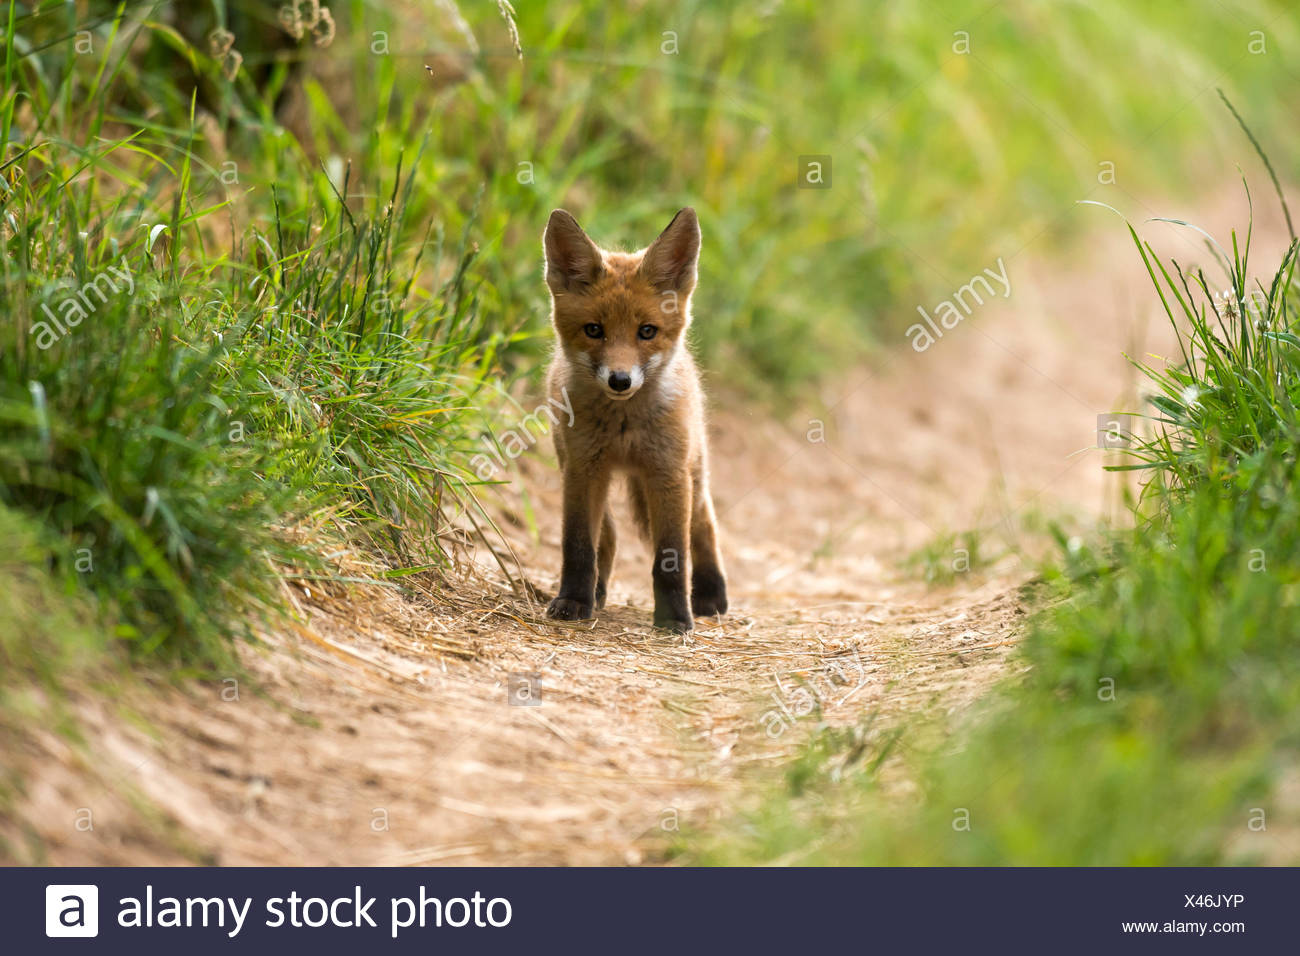 Young red fox (Vulpes vulpes) standing on path, Young Animal, Puppy, Baden-Württemberg, Germany - Stock Image